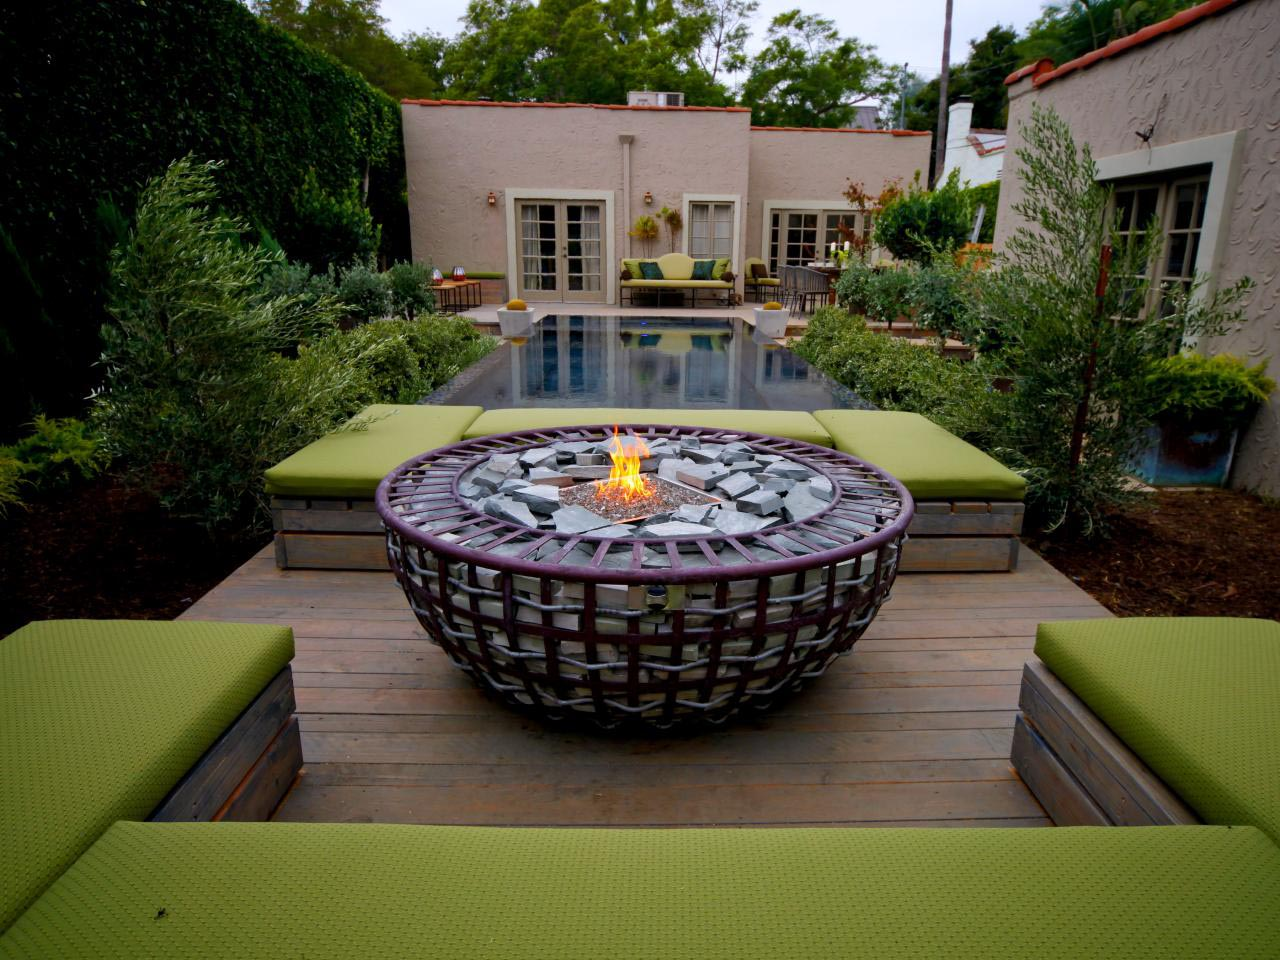 Simple backyard fire pit ideas fire pit design ideas for Simple small backyard ideas